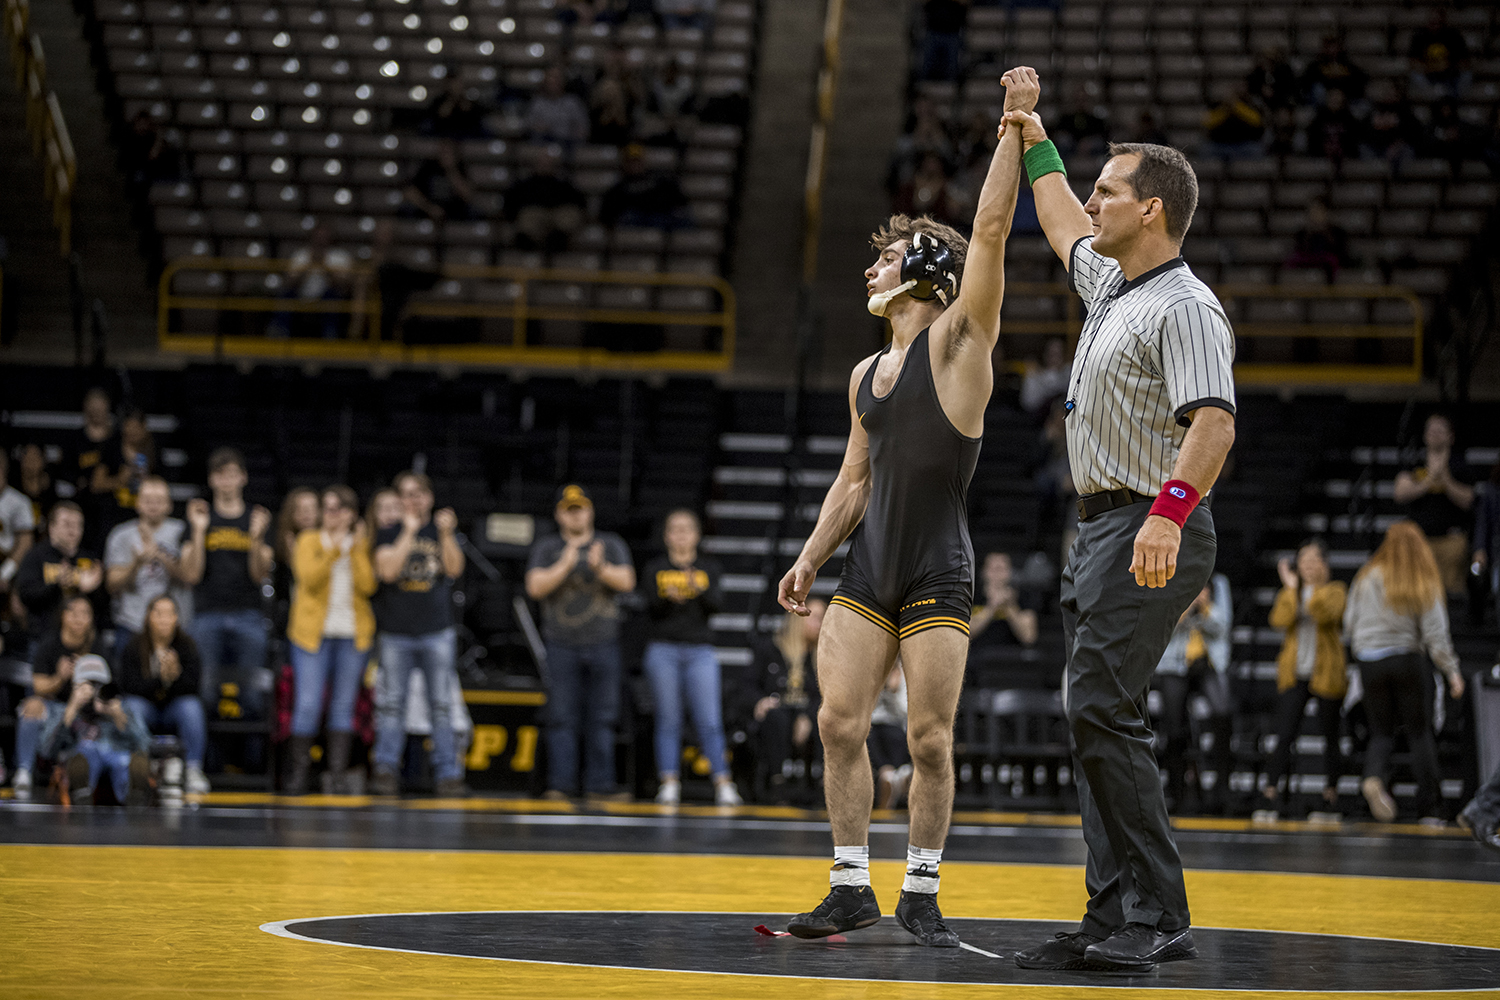 Iowa's Austin DeSanto reacts to his victory during Iowa's dual meet against Purdue at Carver-Hawkeye Arena in Iowa City on Saturday, November 24, 2018. DeSanto defeated Thornton 5-2. The Hawkeyes defeated the Boilermakers 26-9.